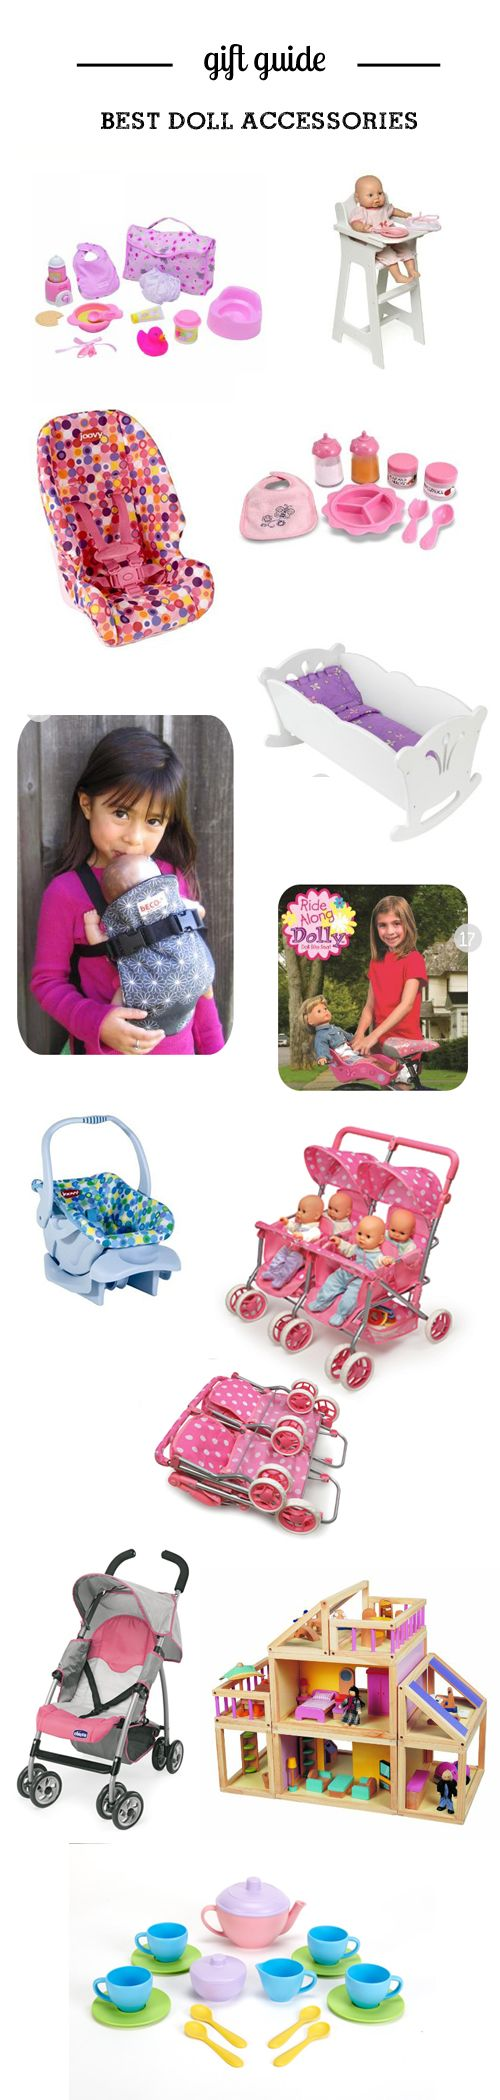 gift guide: top doll accessories